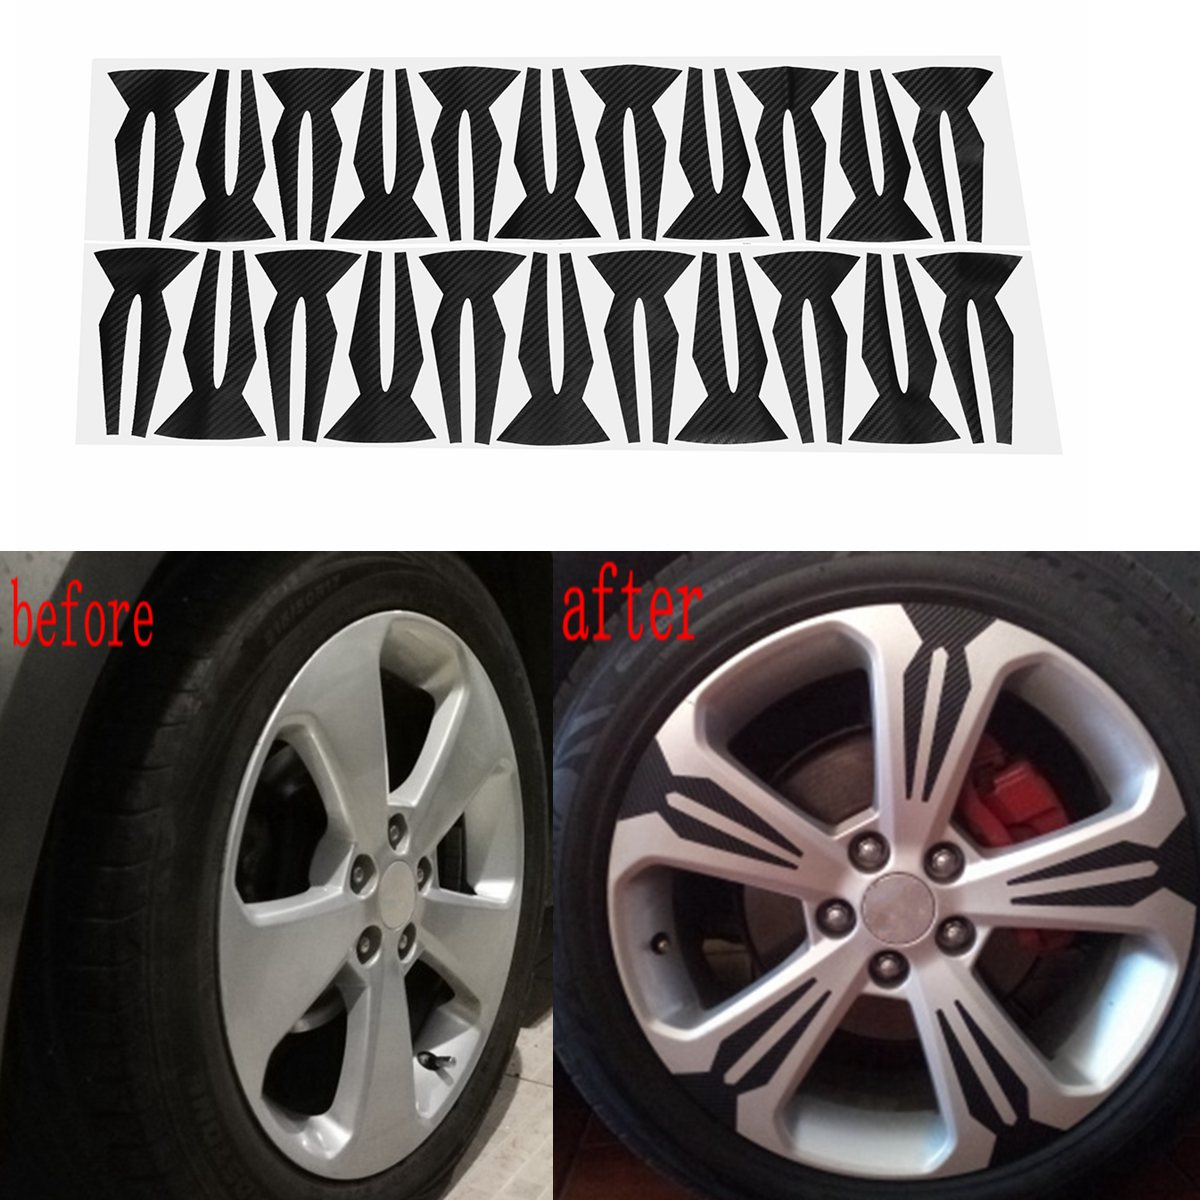 20Pcs 4D Carbon Fiber Car Wheel Hub Stickers Rim Sticker For Chevrolet/Cruze 2009 2010 2011 2012 2013 Car Styling Accessories